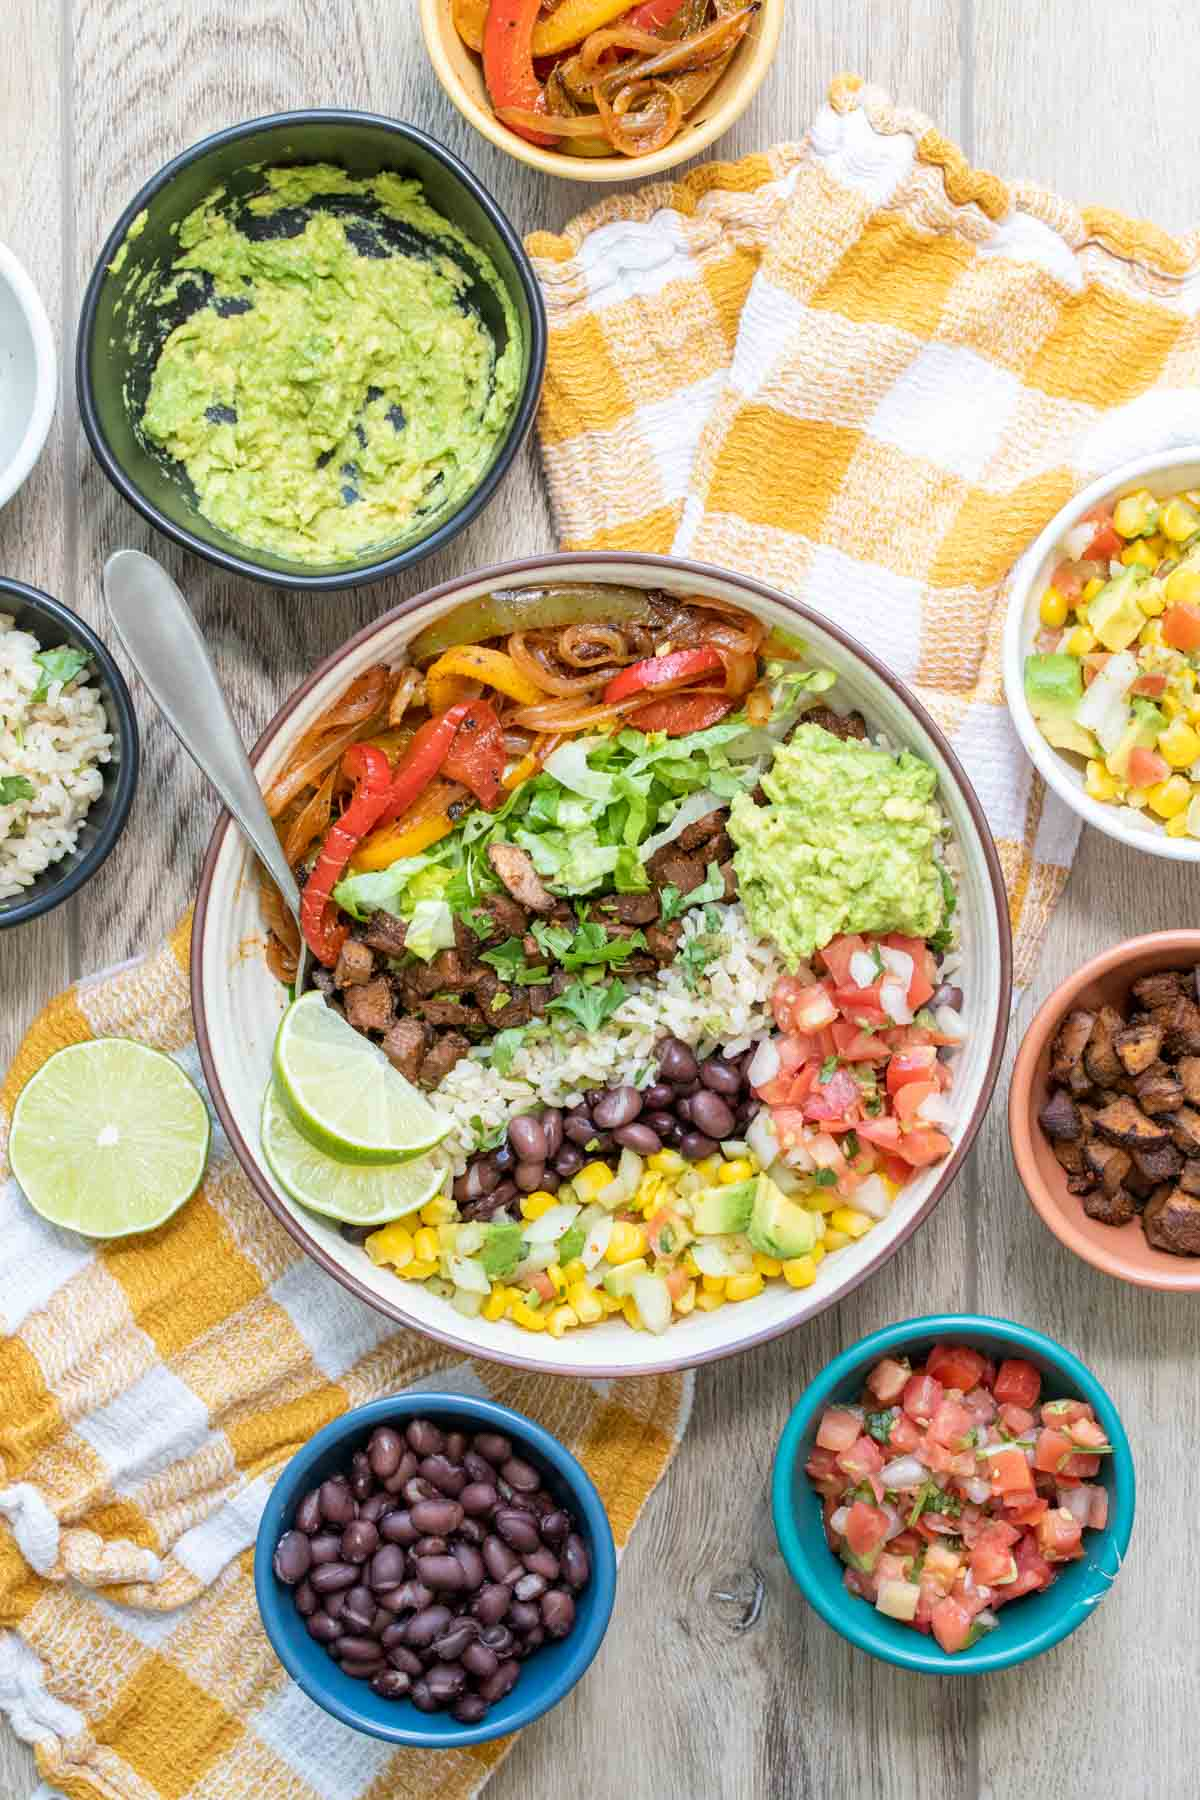 Bowl with piles of ingredients liked up to make a burrito bowl surrounded by small bowls of ingredients